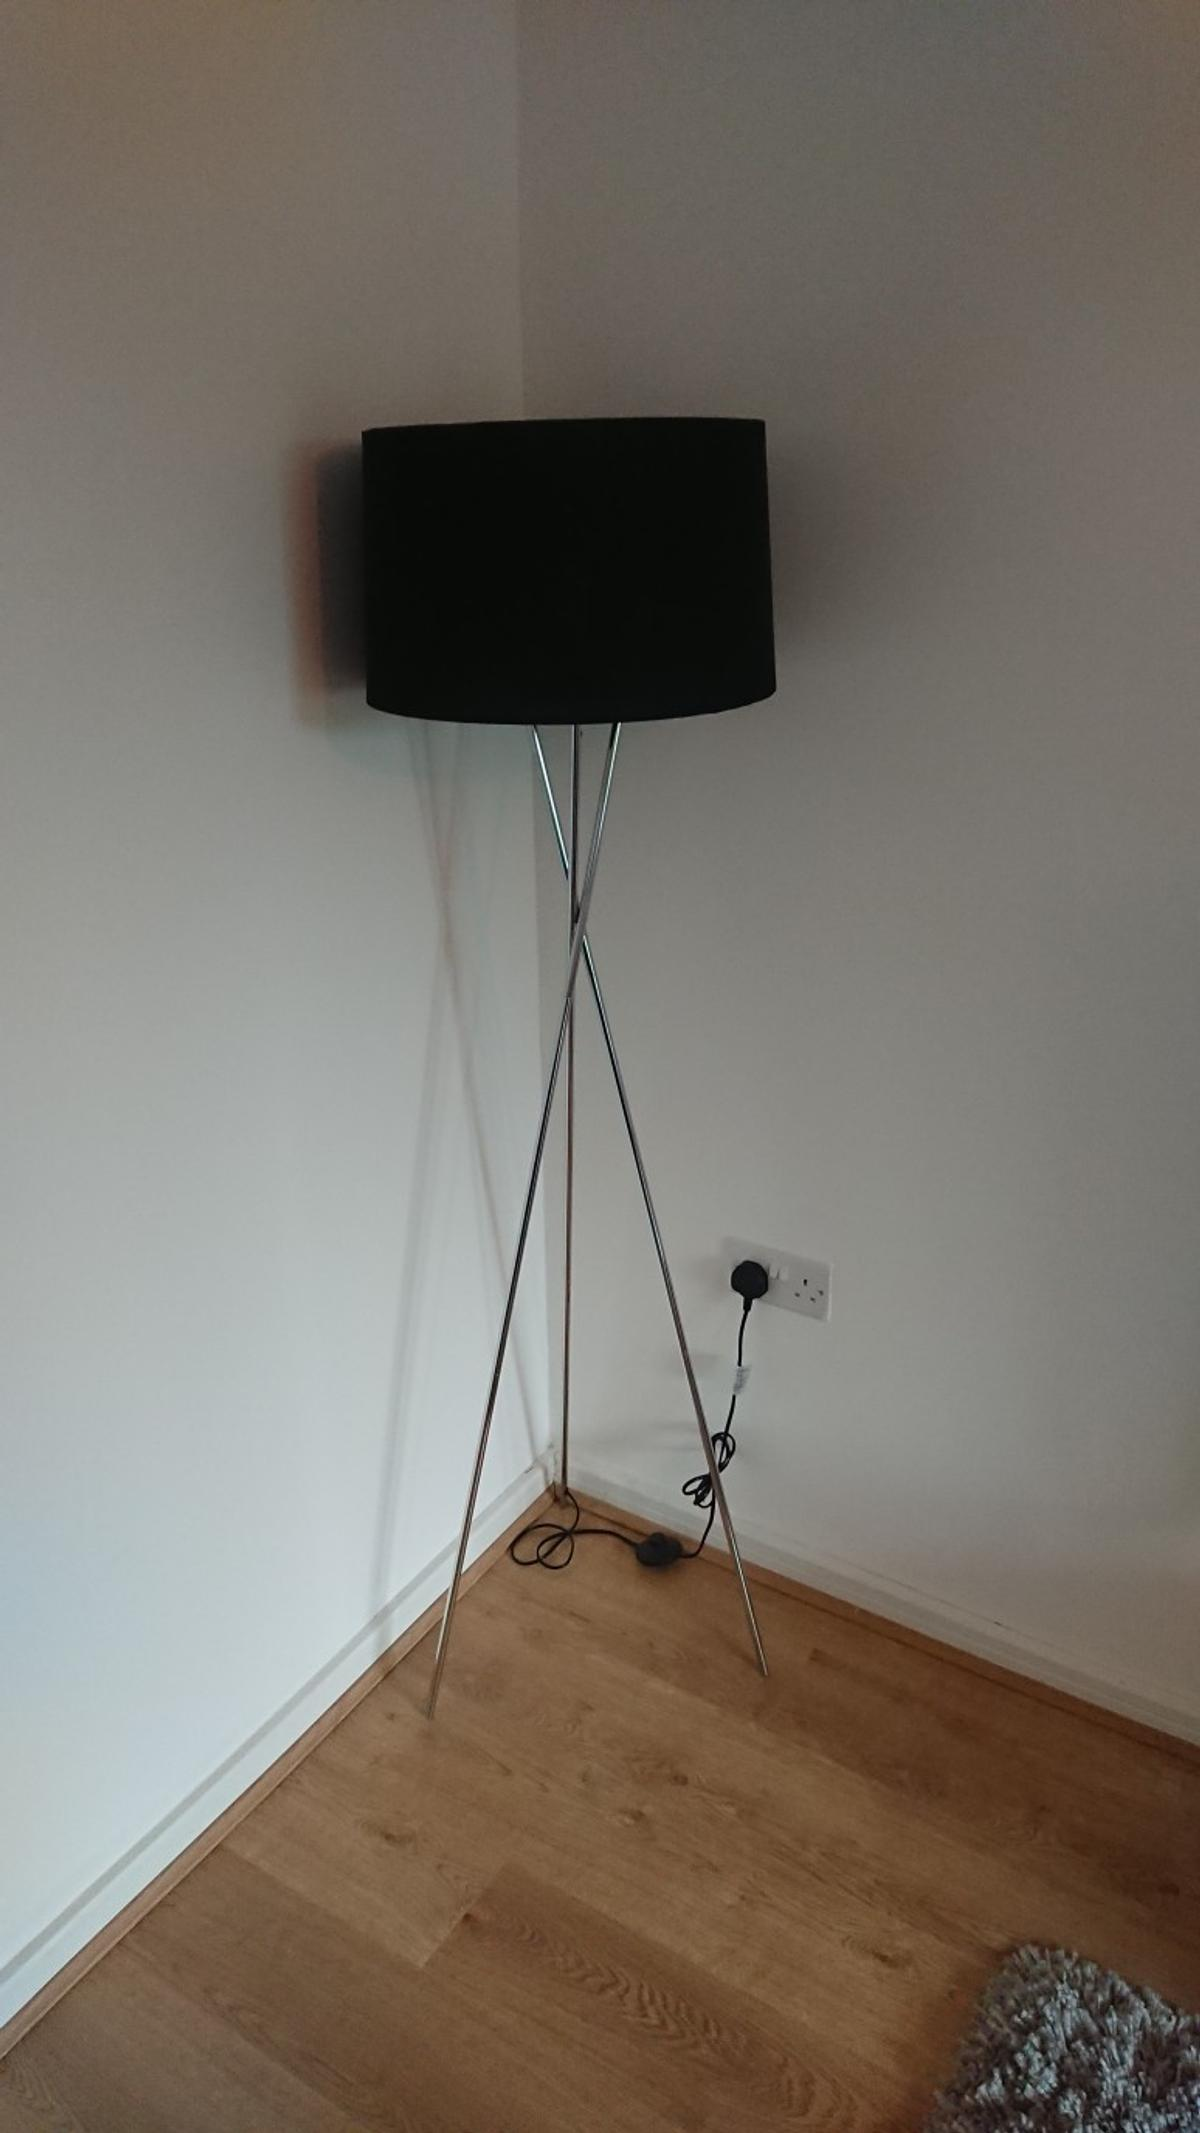 Picture of: Black Tripod Floor Lamp In M4 Manchester For 15 00 For Sale Shpock